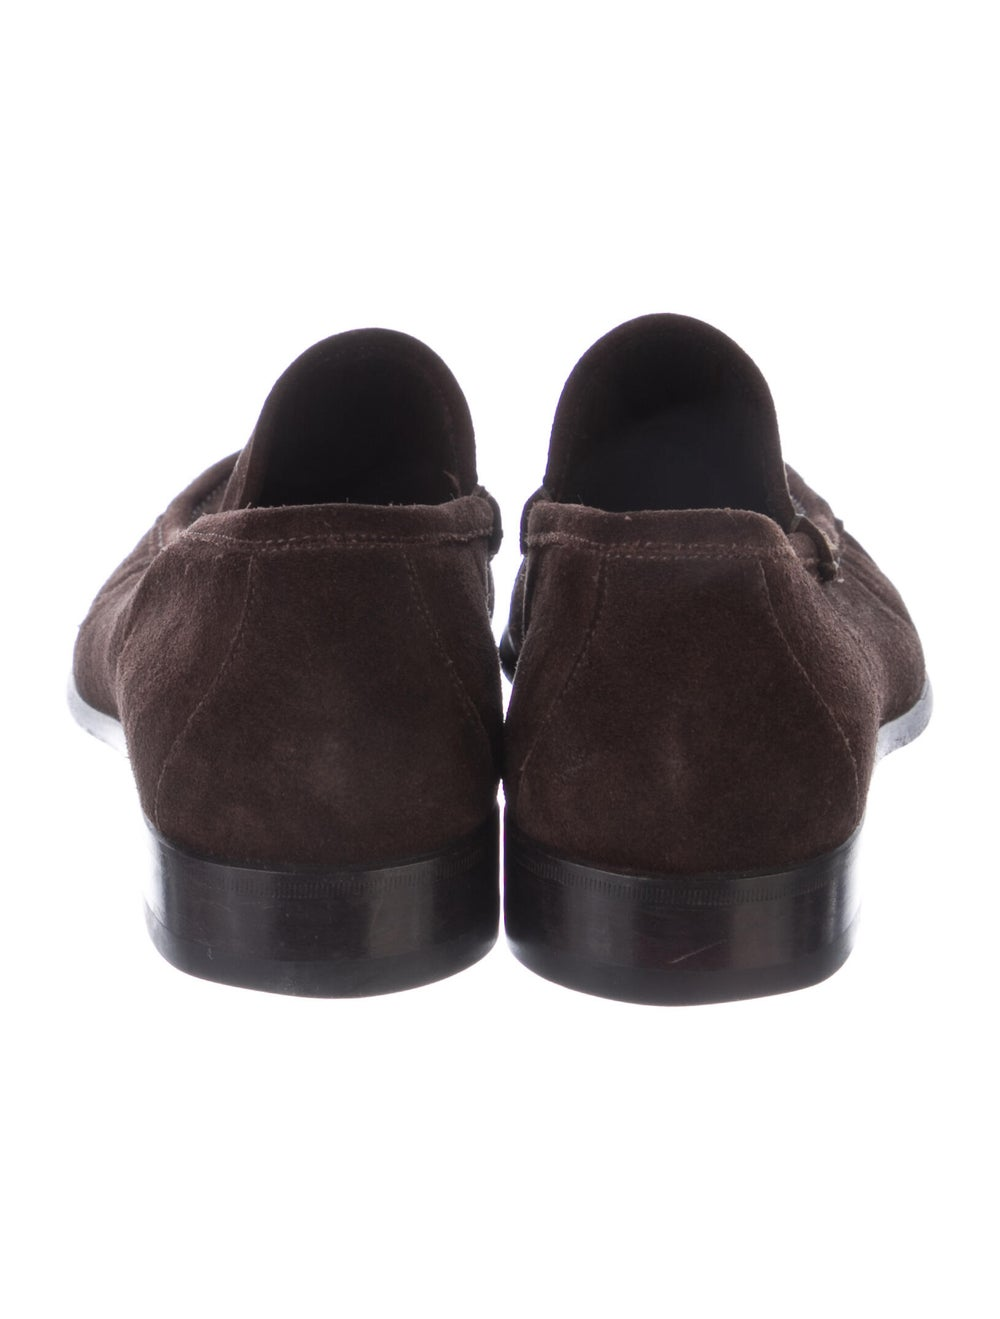 Gucci Suede Dress Loafers Brown - image 4